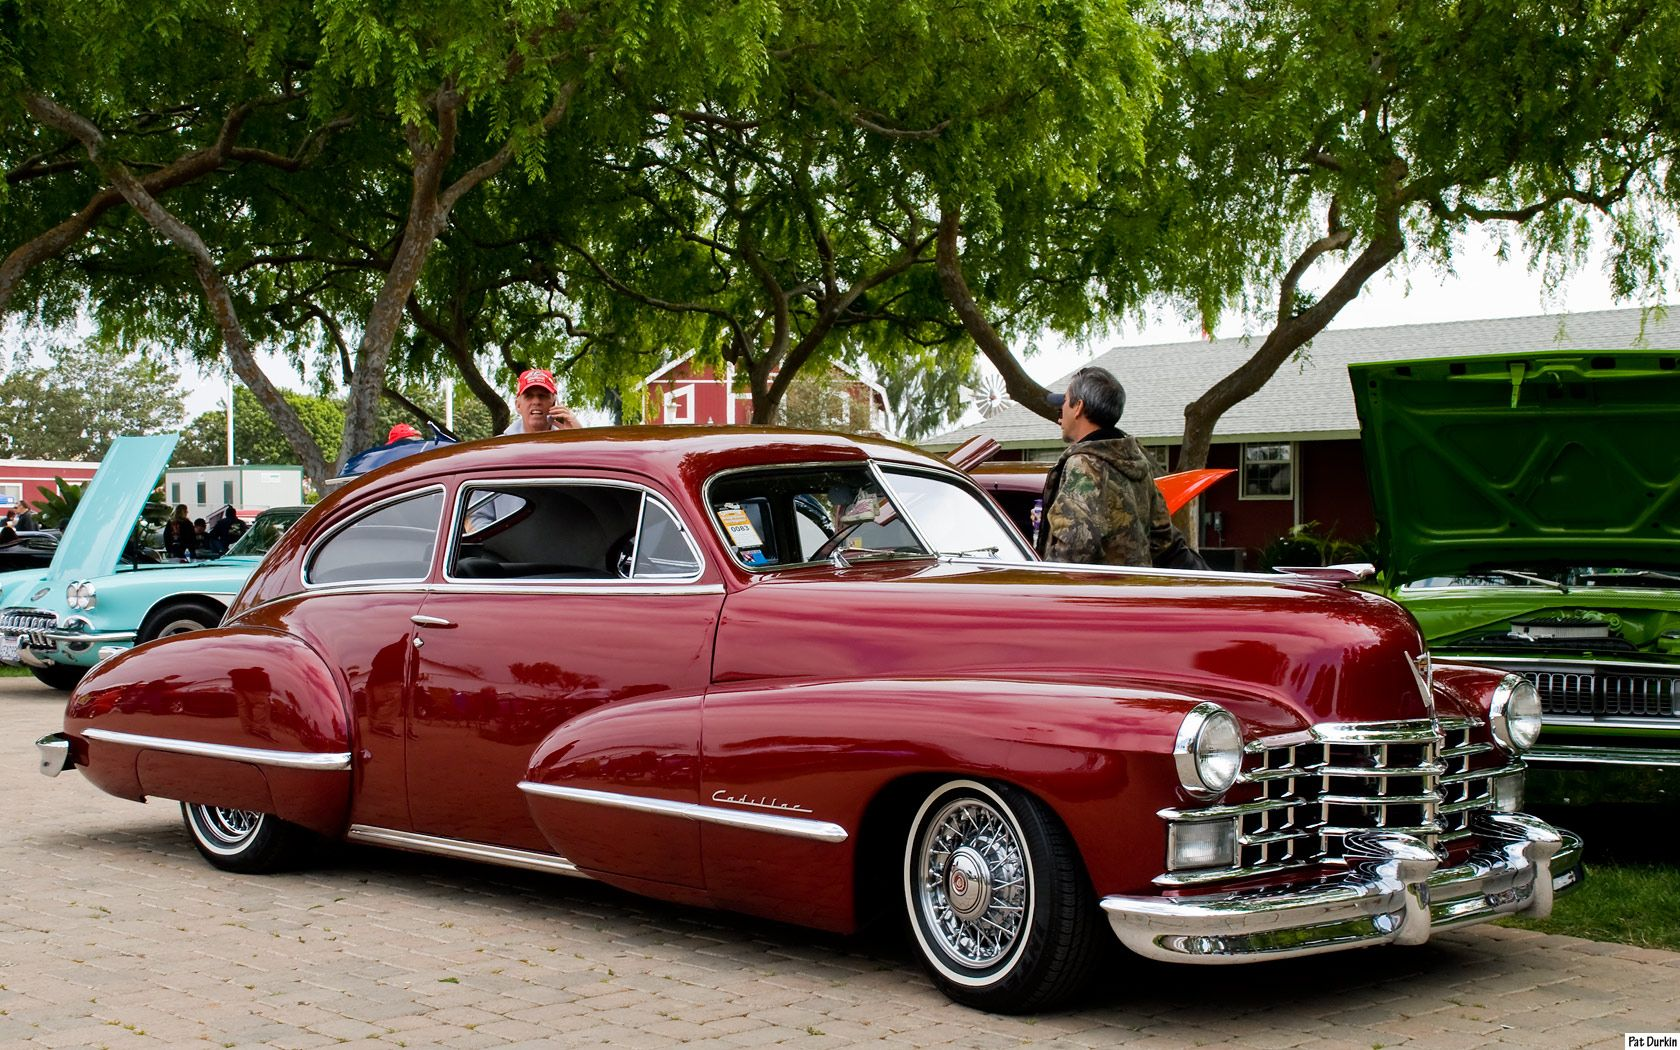 1947 Cadillac Club Coupe Candy Apple Red Automotive